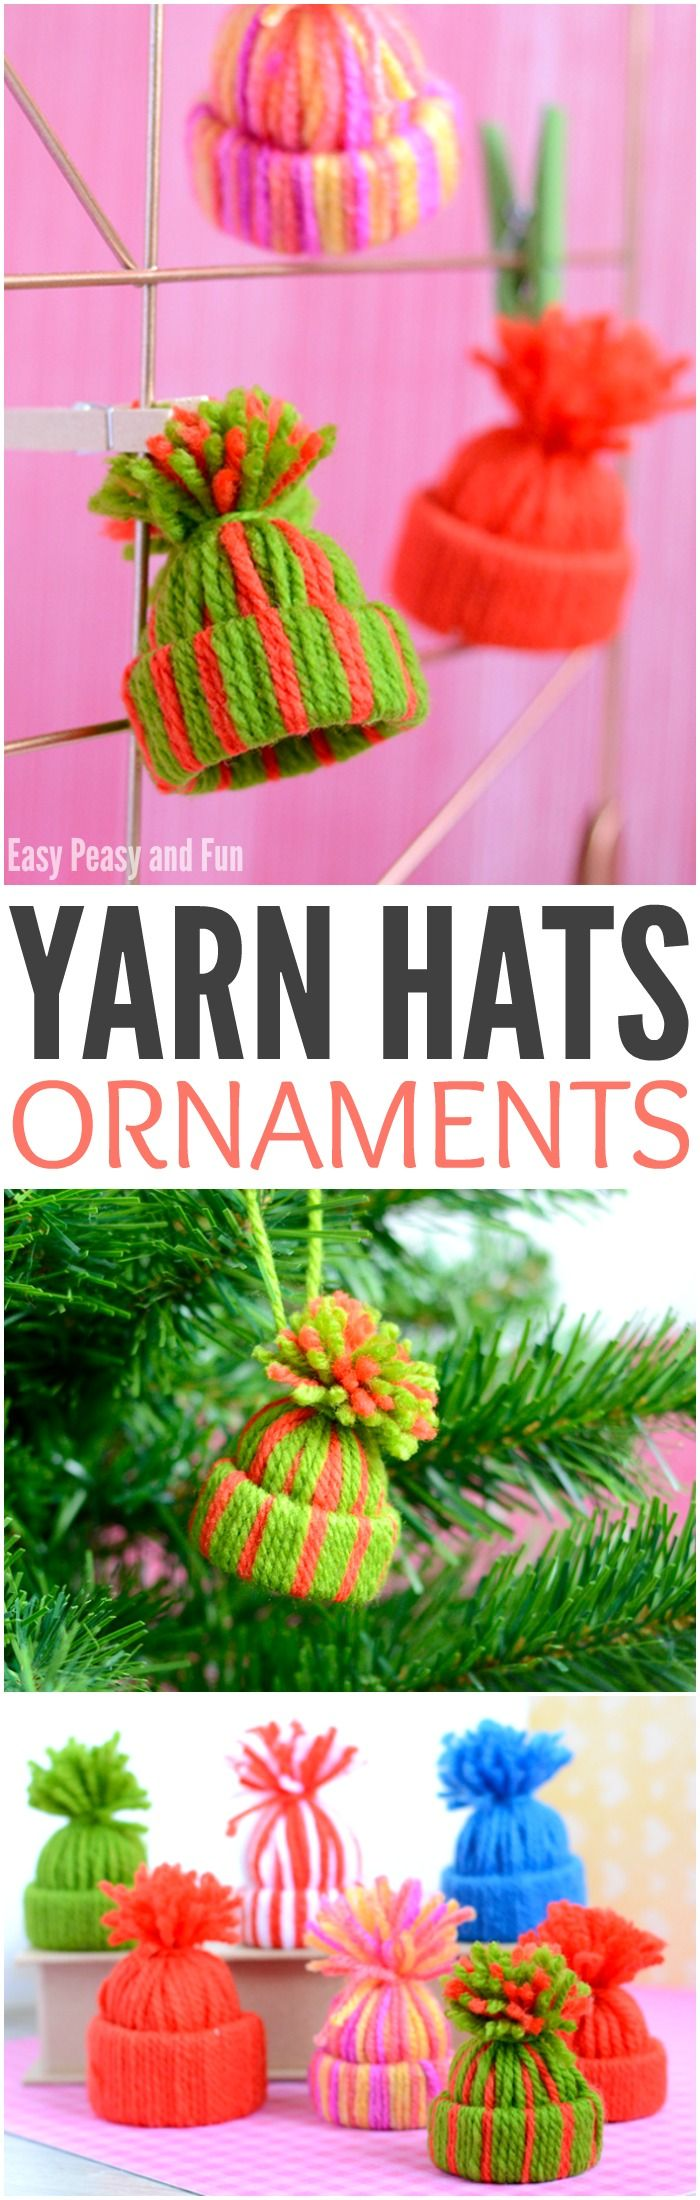 Pinterest Christmas Ideas And Crafts Part - 46: Crafts For Christmas